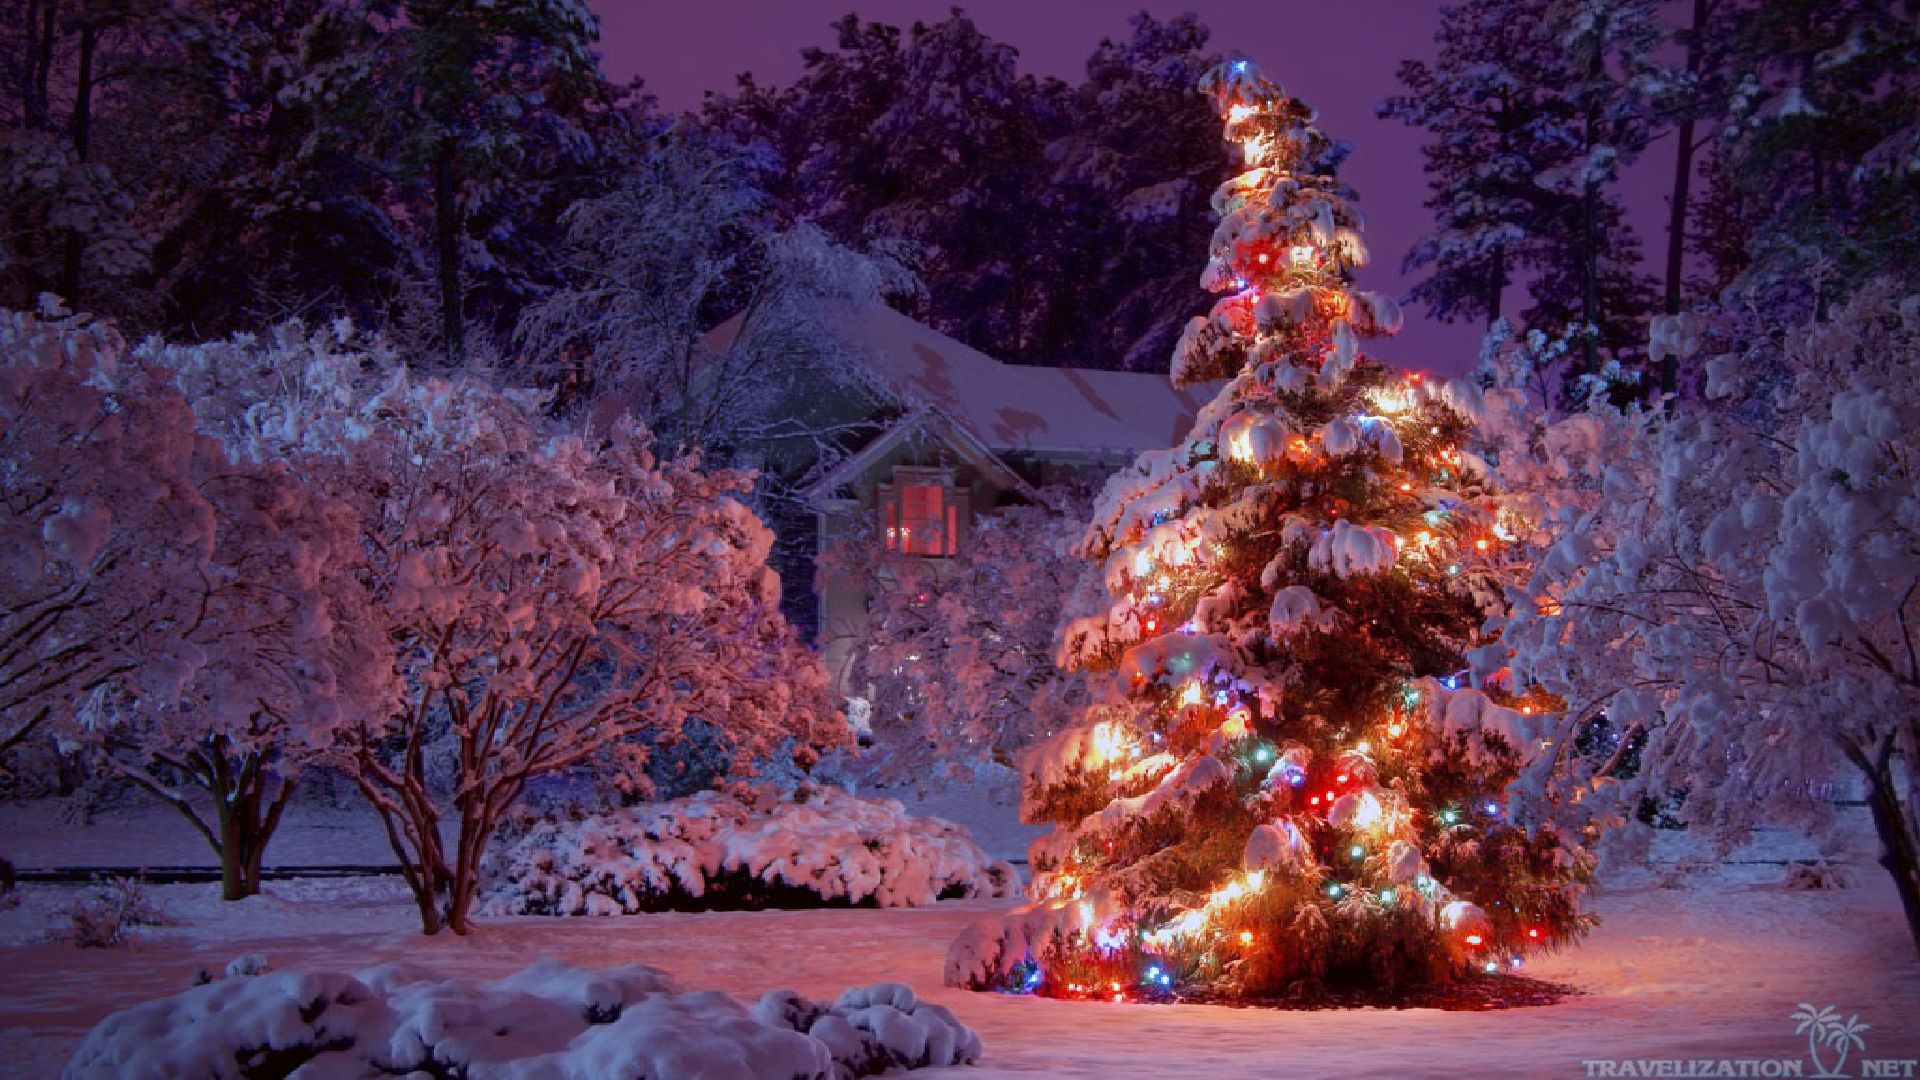 Collection of Christmas Desktop Wallpaper on HDWallpapers 1920x1080 1920x1080